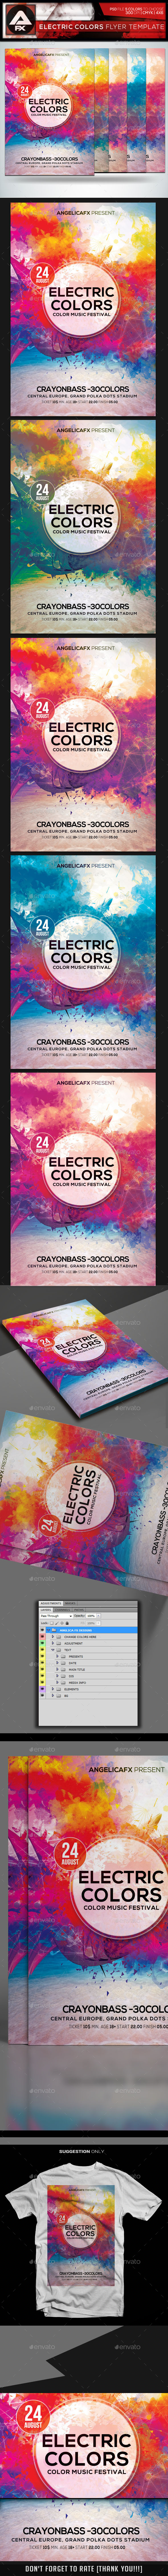 Electric Colors Flyer Template - Flyers Print Templates